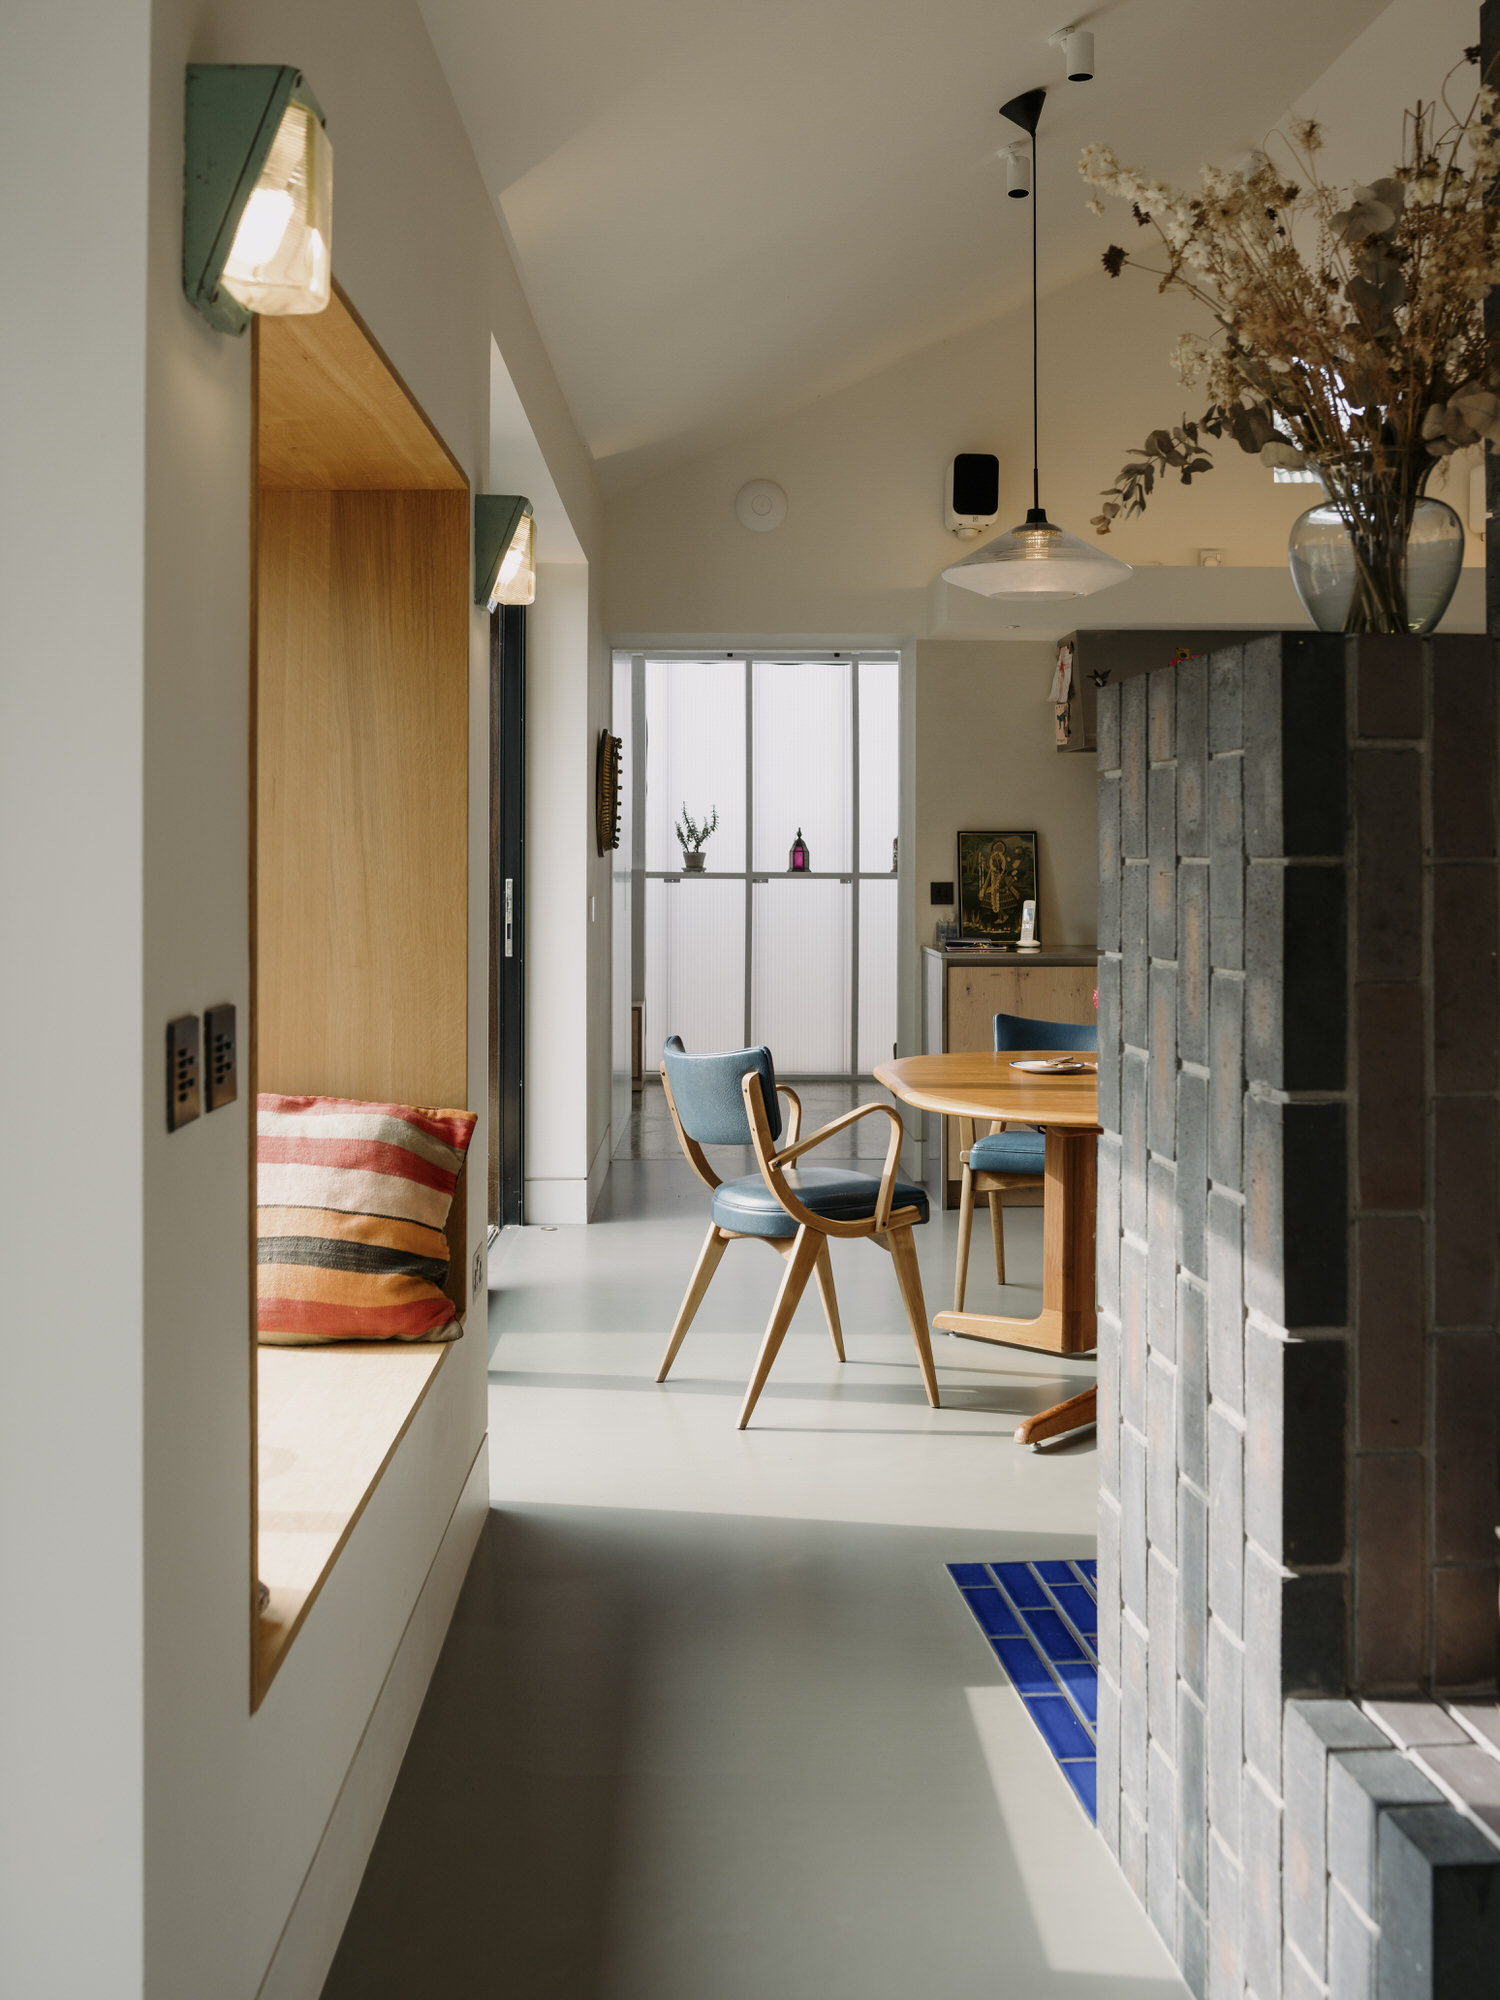 Haycroft Gardens: Sustainable Multi-generational House by Sarah Wigglesworth.